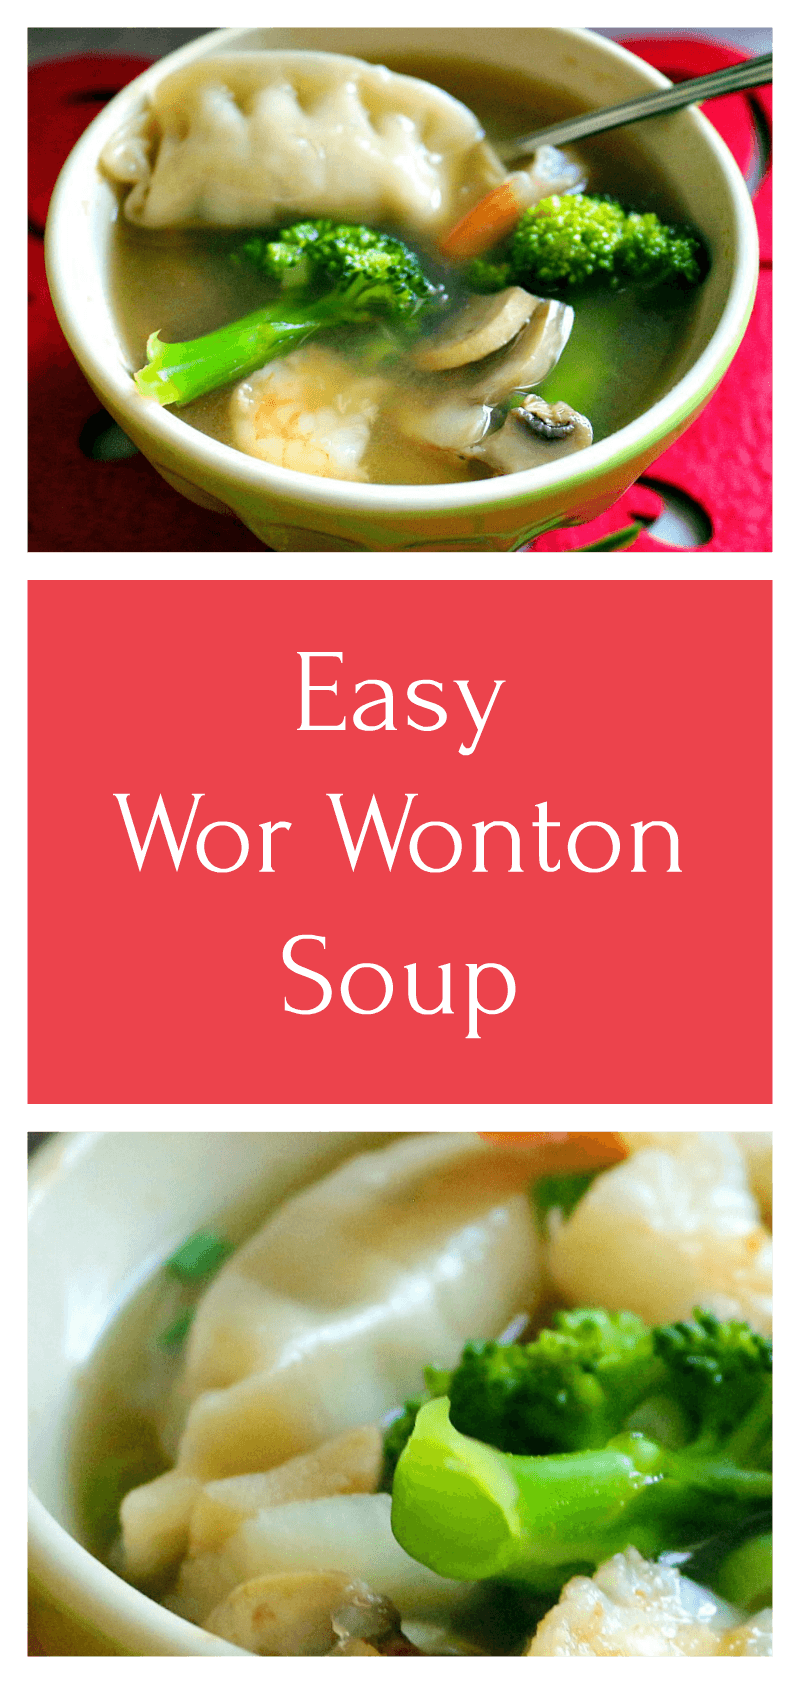 A quick and easy Wor Wonton Soup recipe that takes 20 minutes to make and tastes homemade!